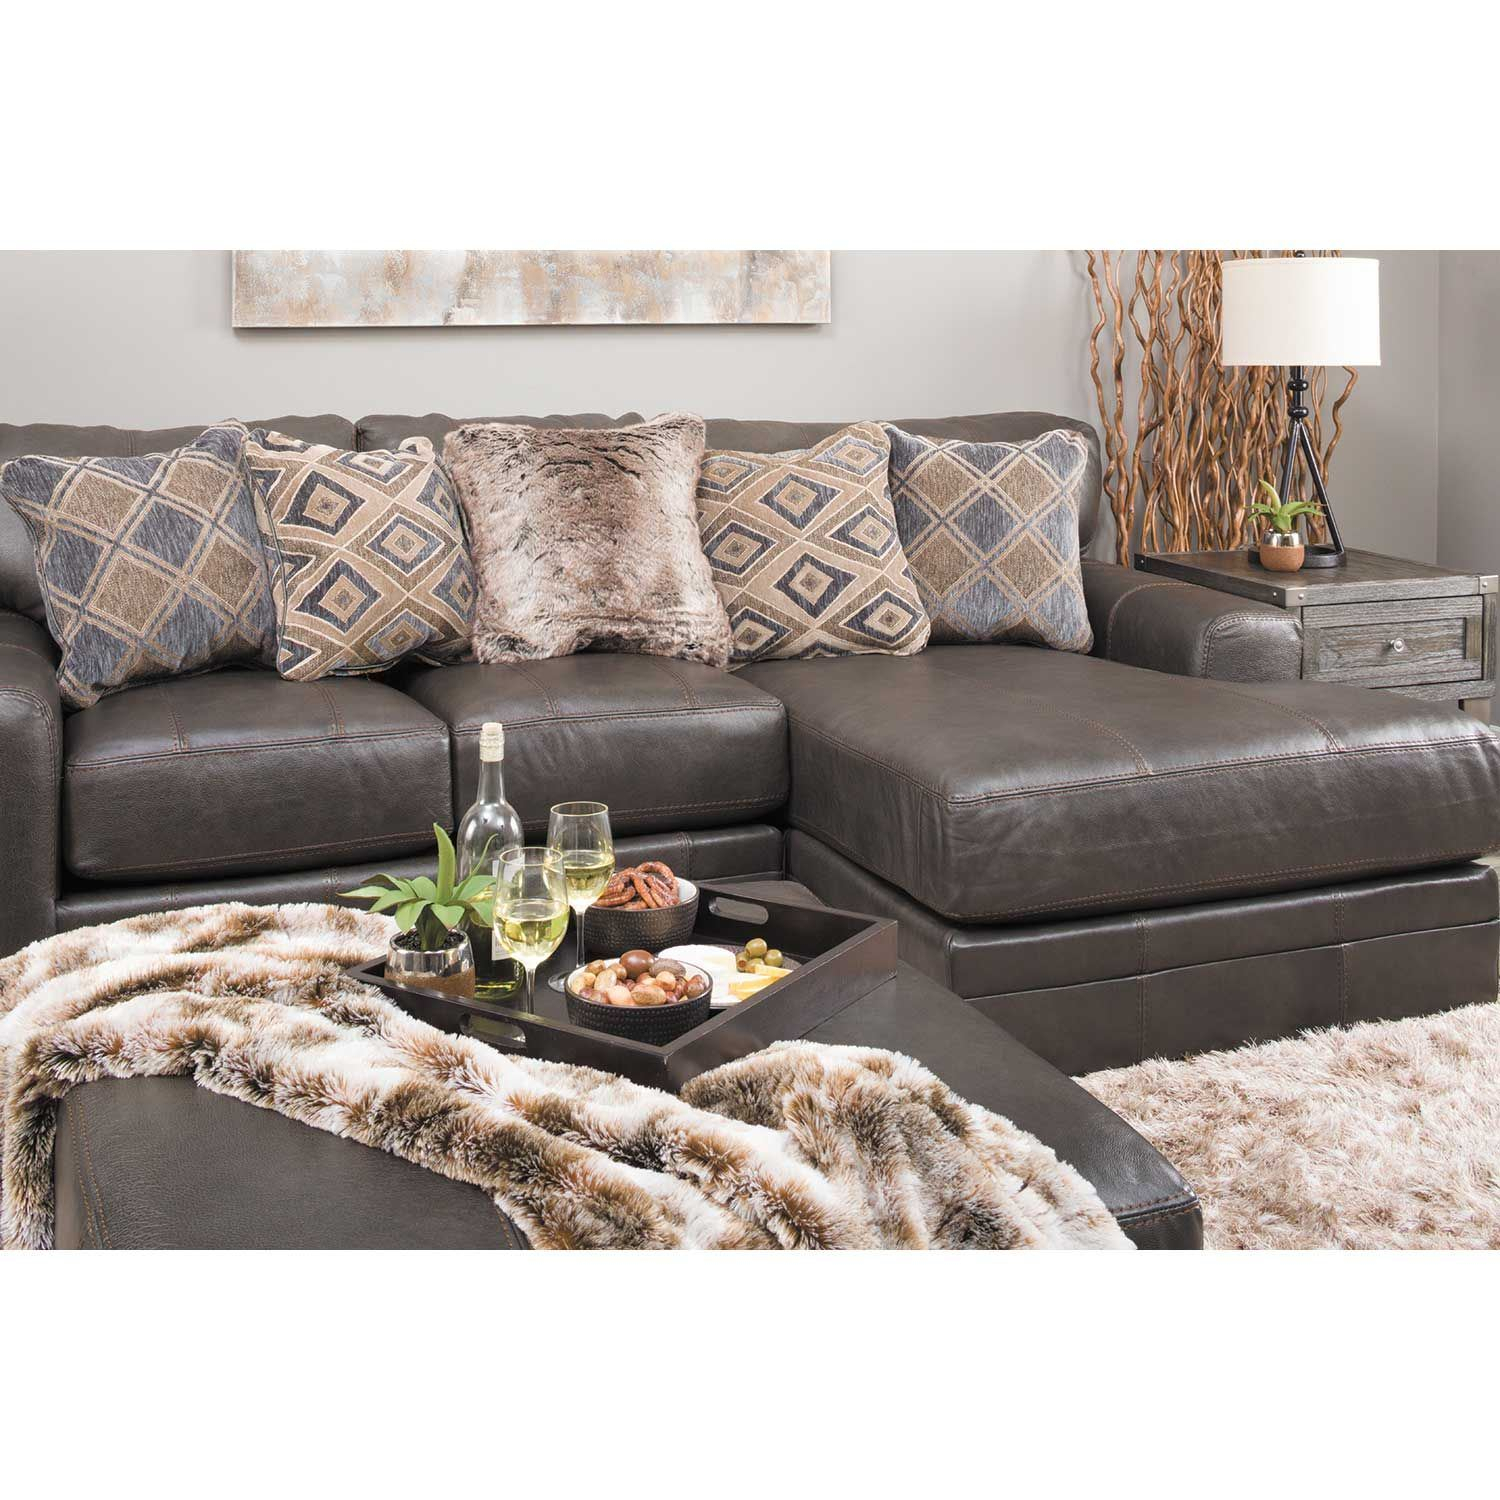 Denali 2 Piece Italian Leather Sectional With Laf Chaise In Avery 2 Piece Sectionals With Laf Armless Chaise (View 12 of 15)